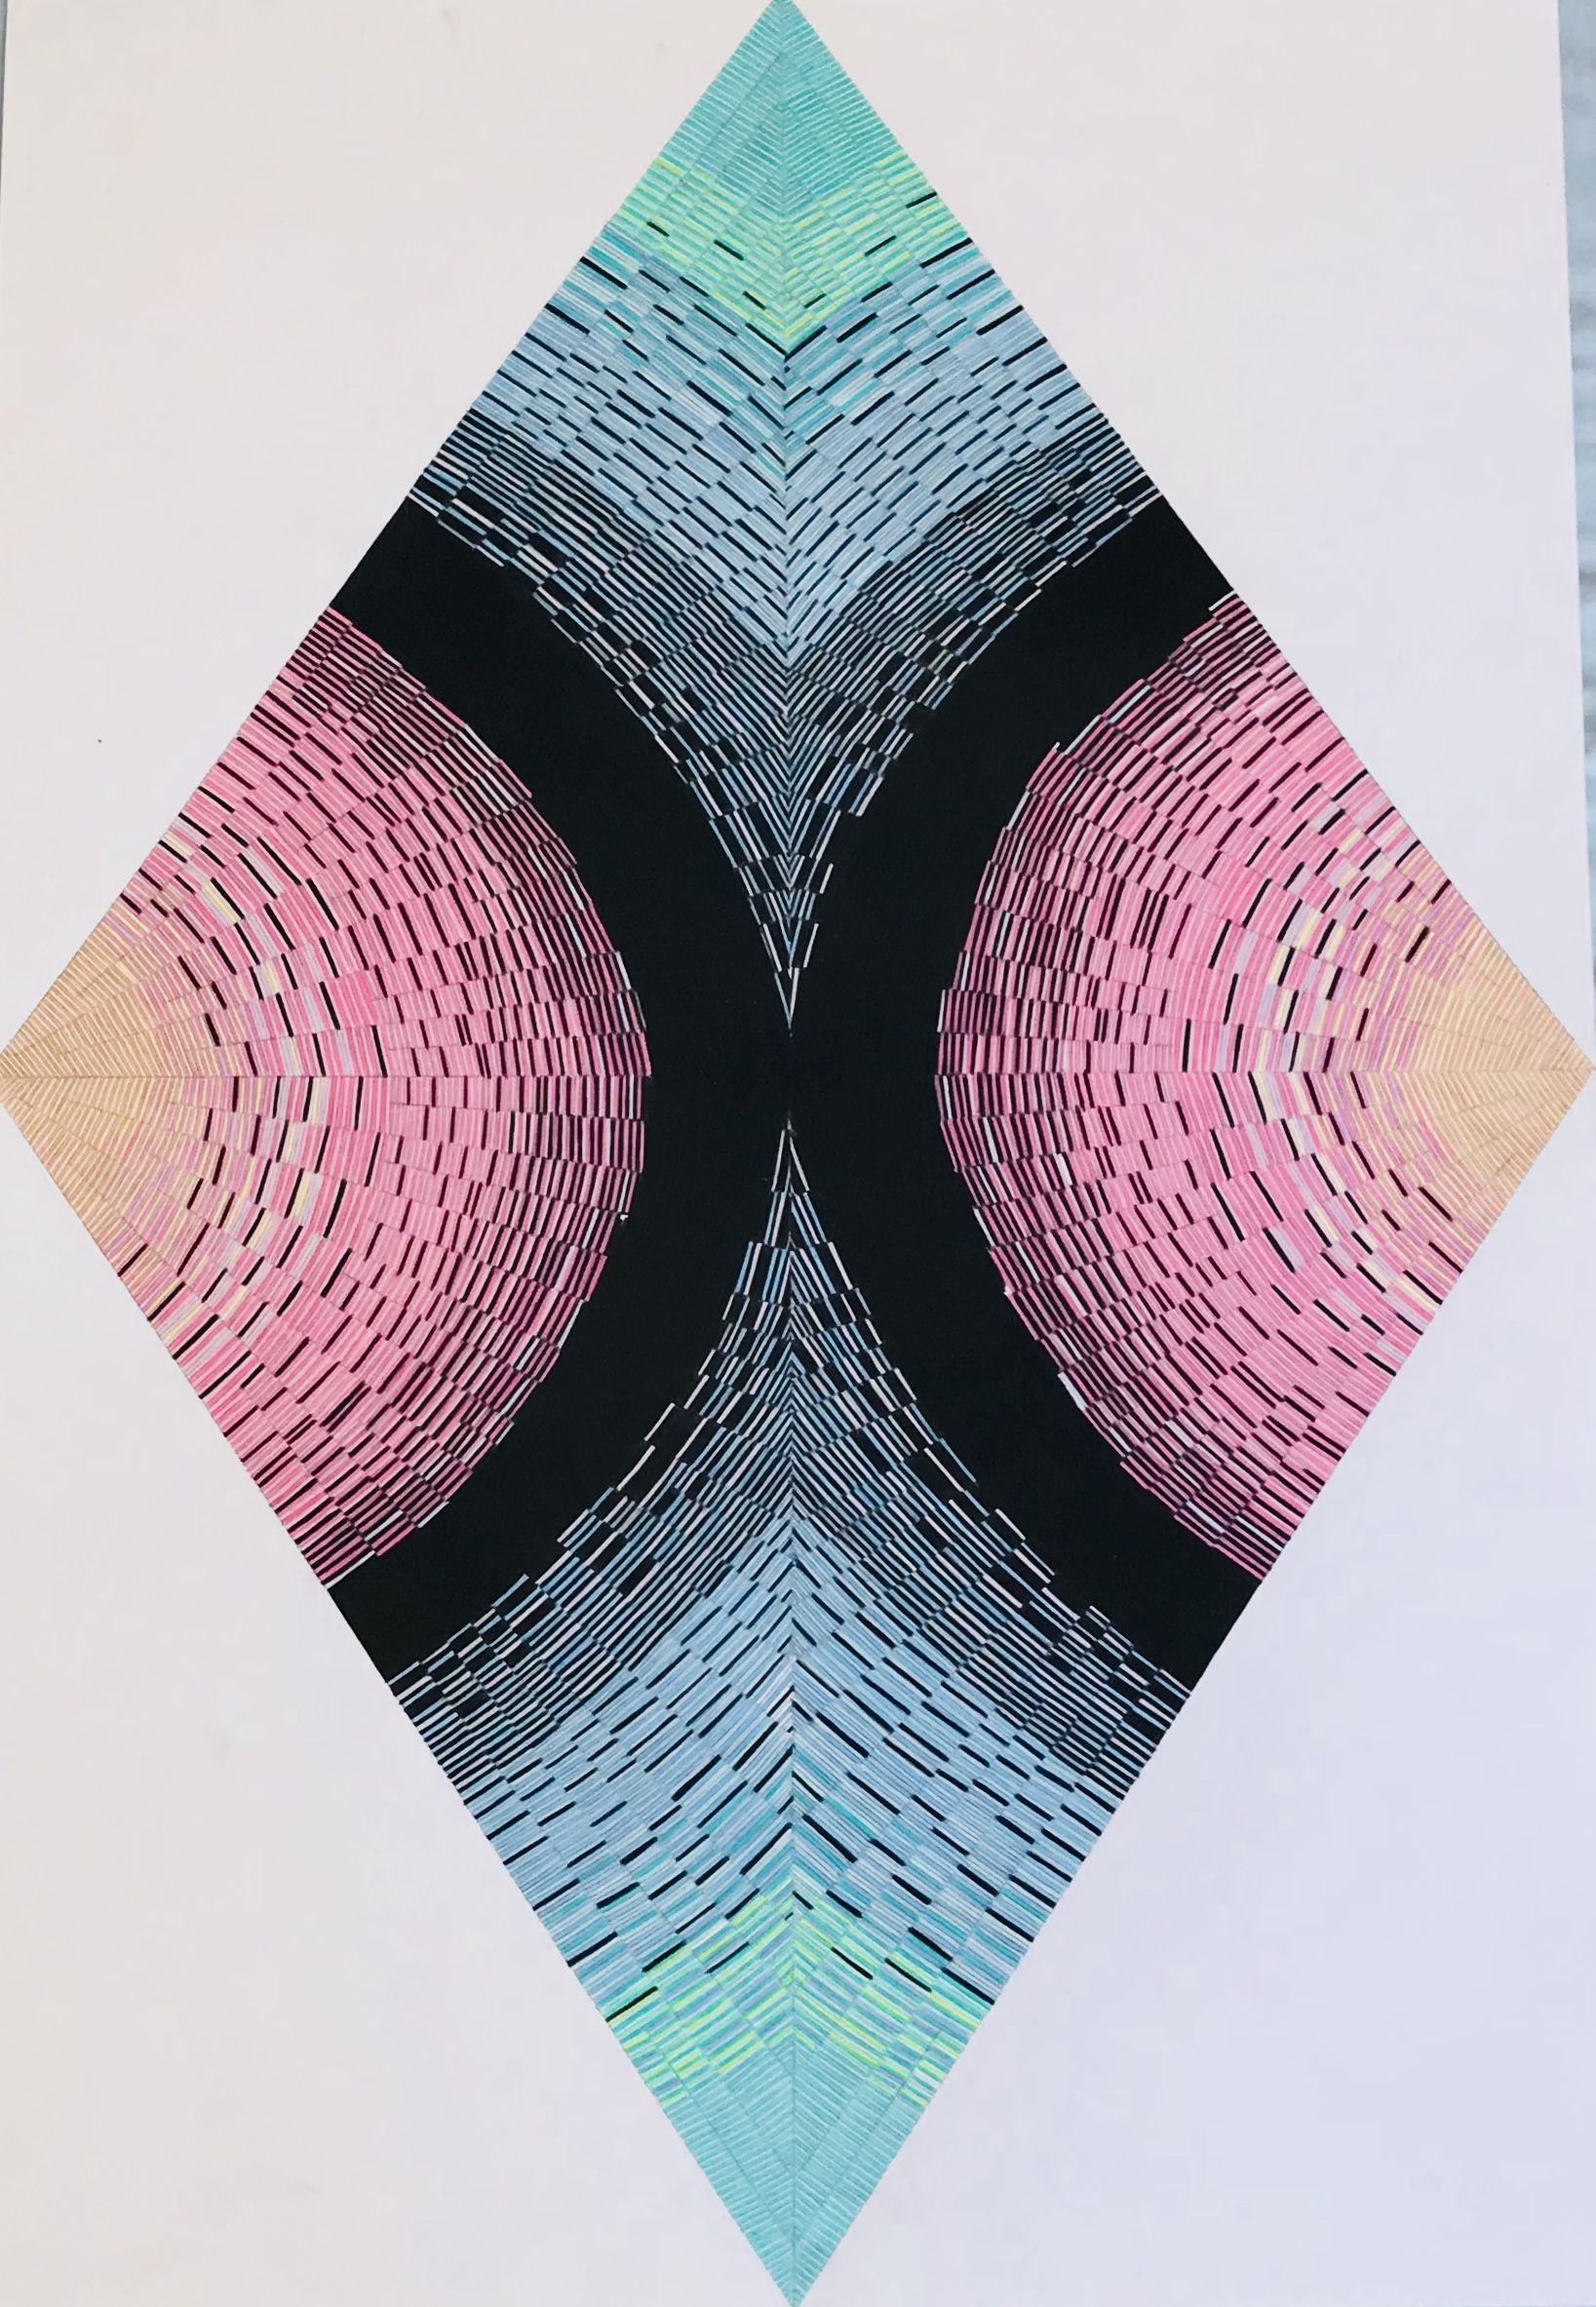 diamond cross section 3 artwork by Sara Partch Smith - art listed for sale on Artplode